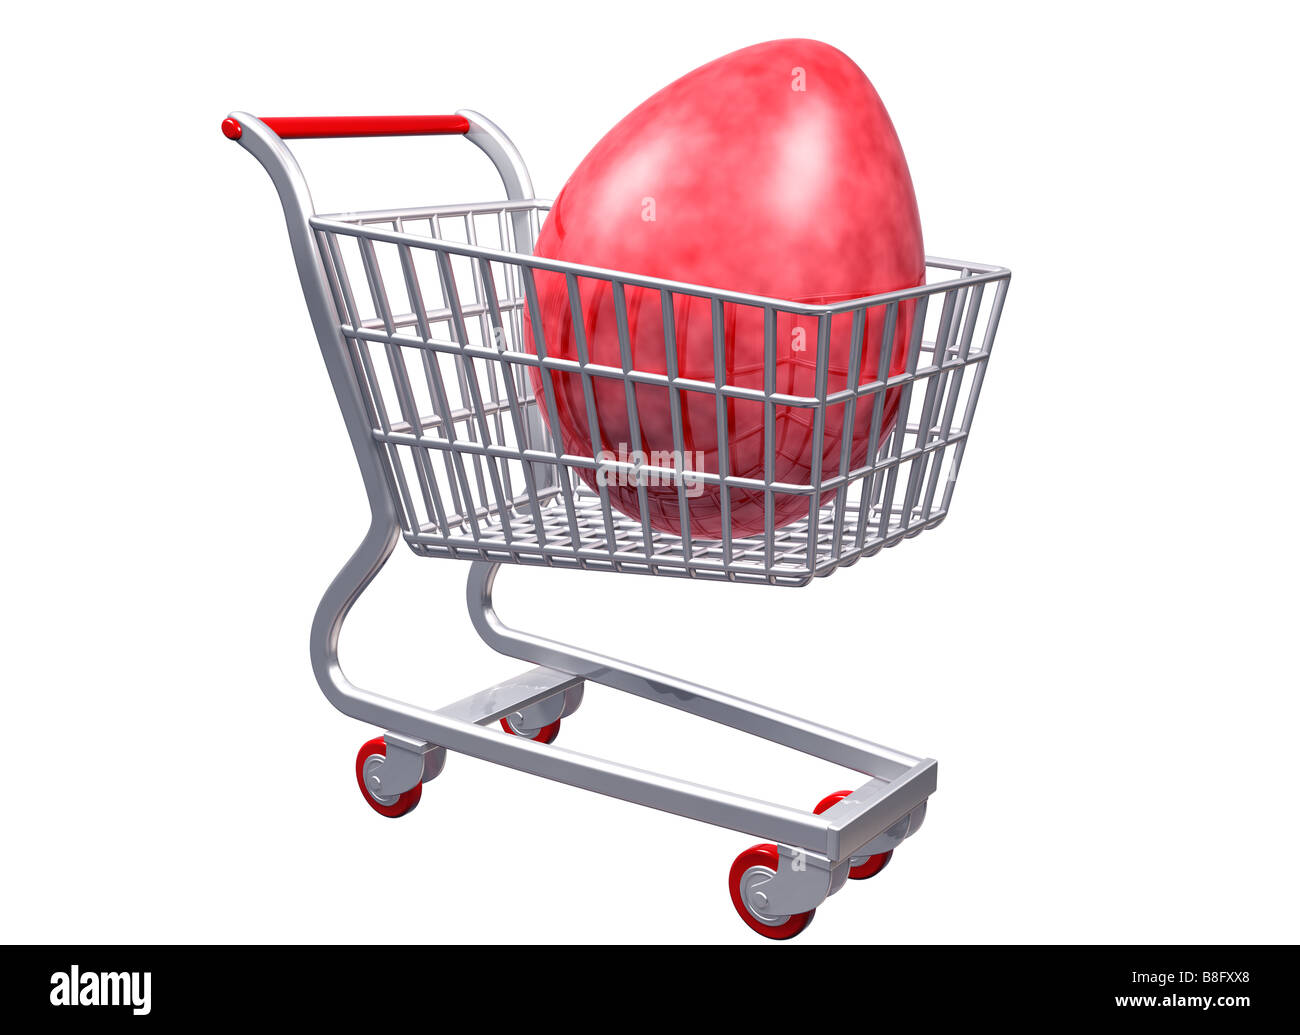 Isolated illustration of a stylized shopping cart containing a giant egg - Stock Image